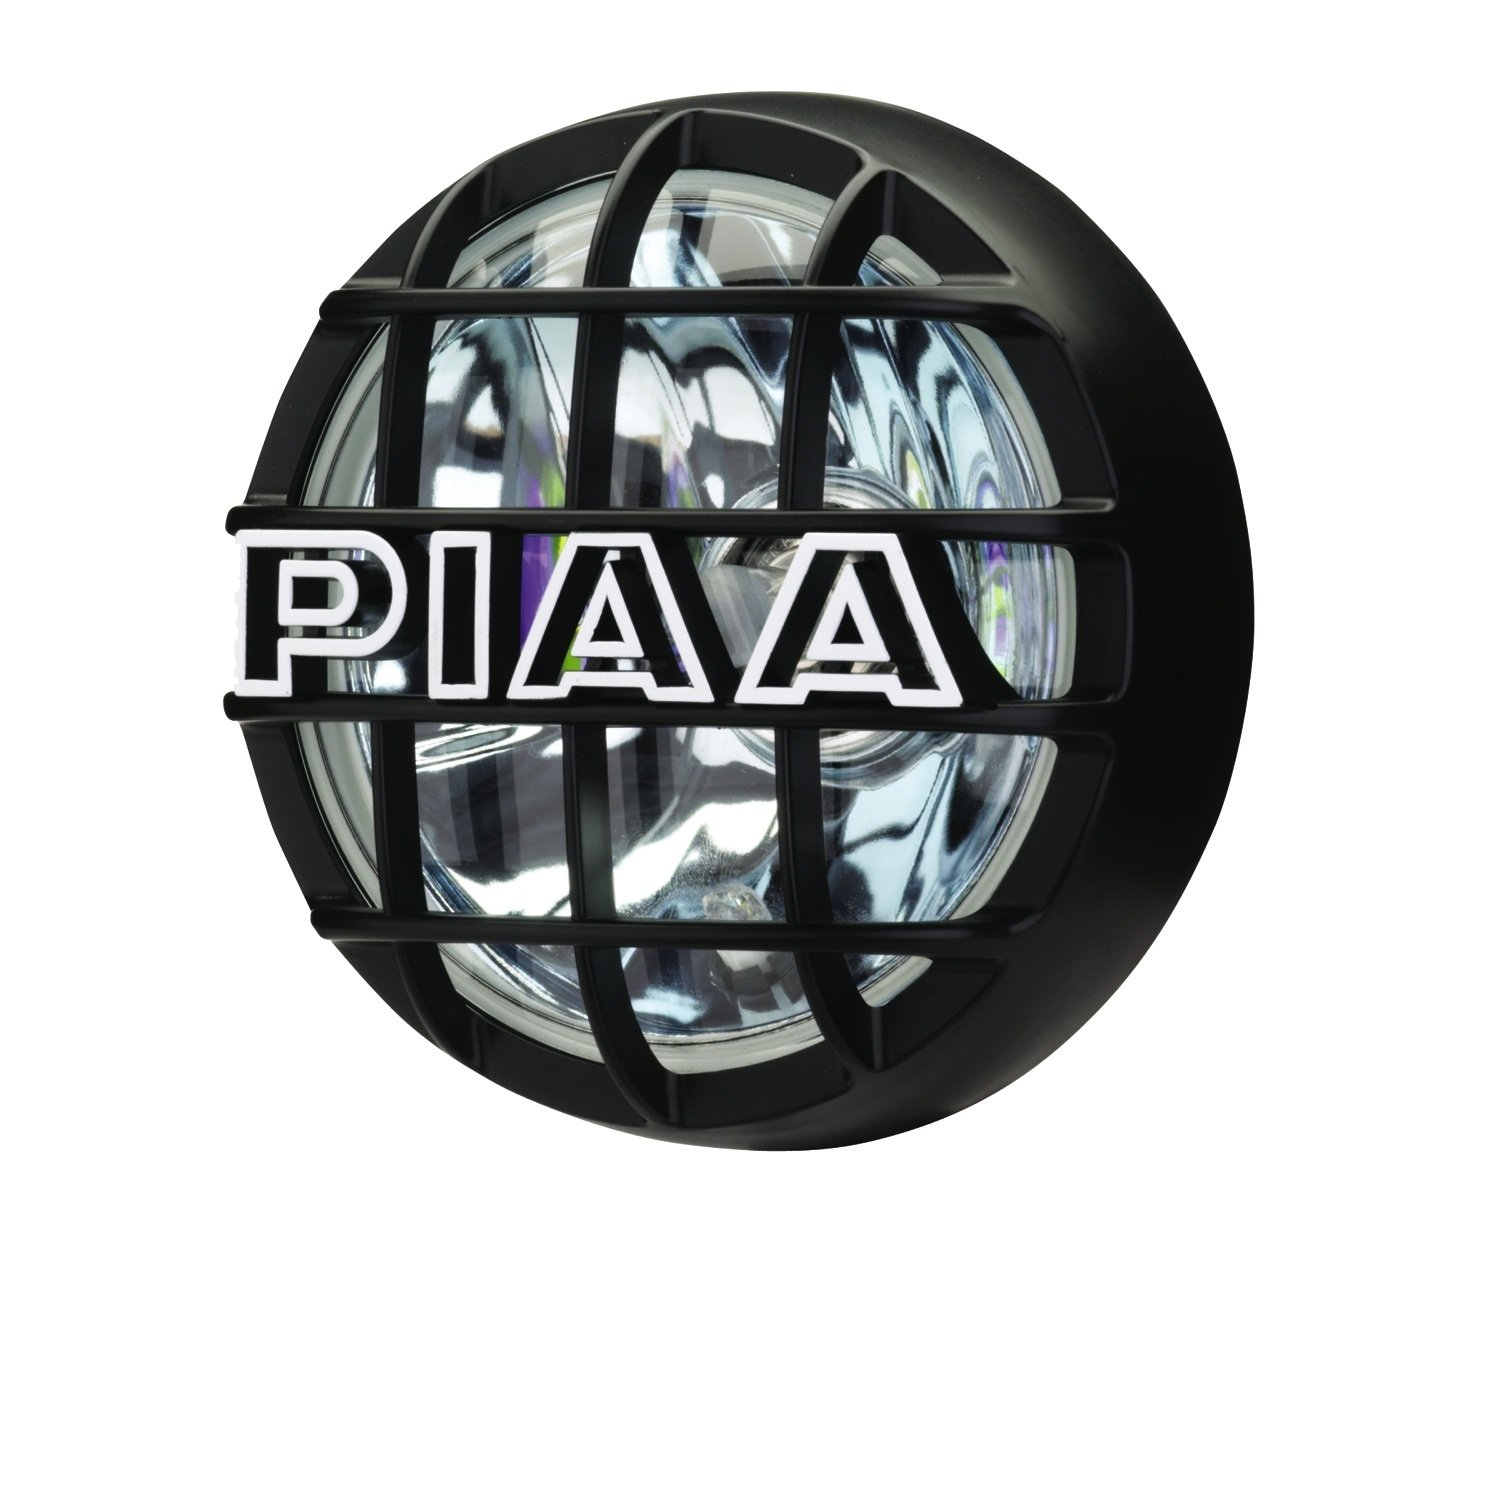 71iUAJ2p8JL._SL1500_ amazon com piaa 5250 525 series dual beam lamp set of 2 automotive piaa fog light wiring harness at alyssarenee.co